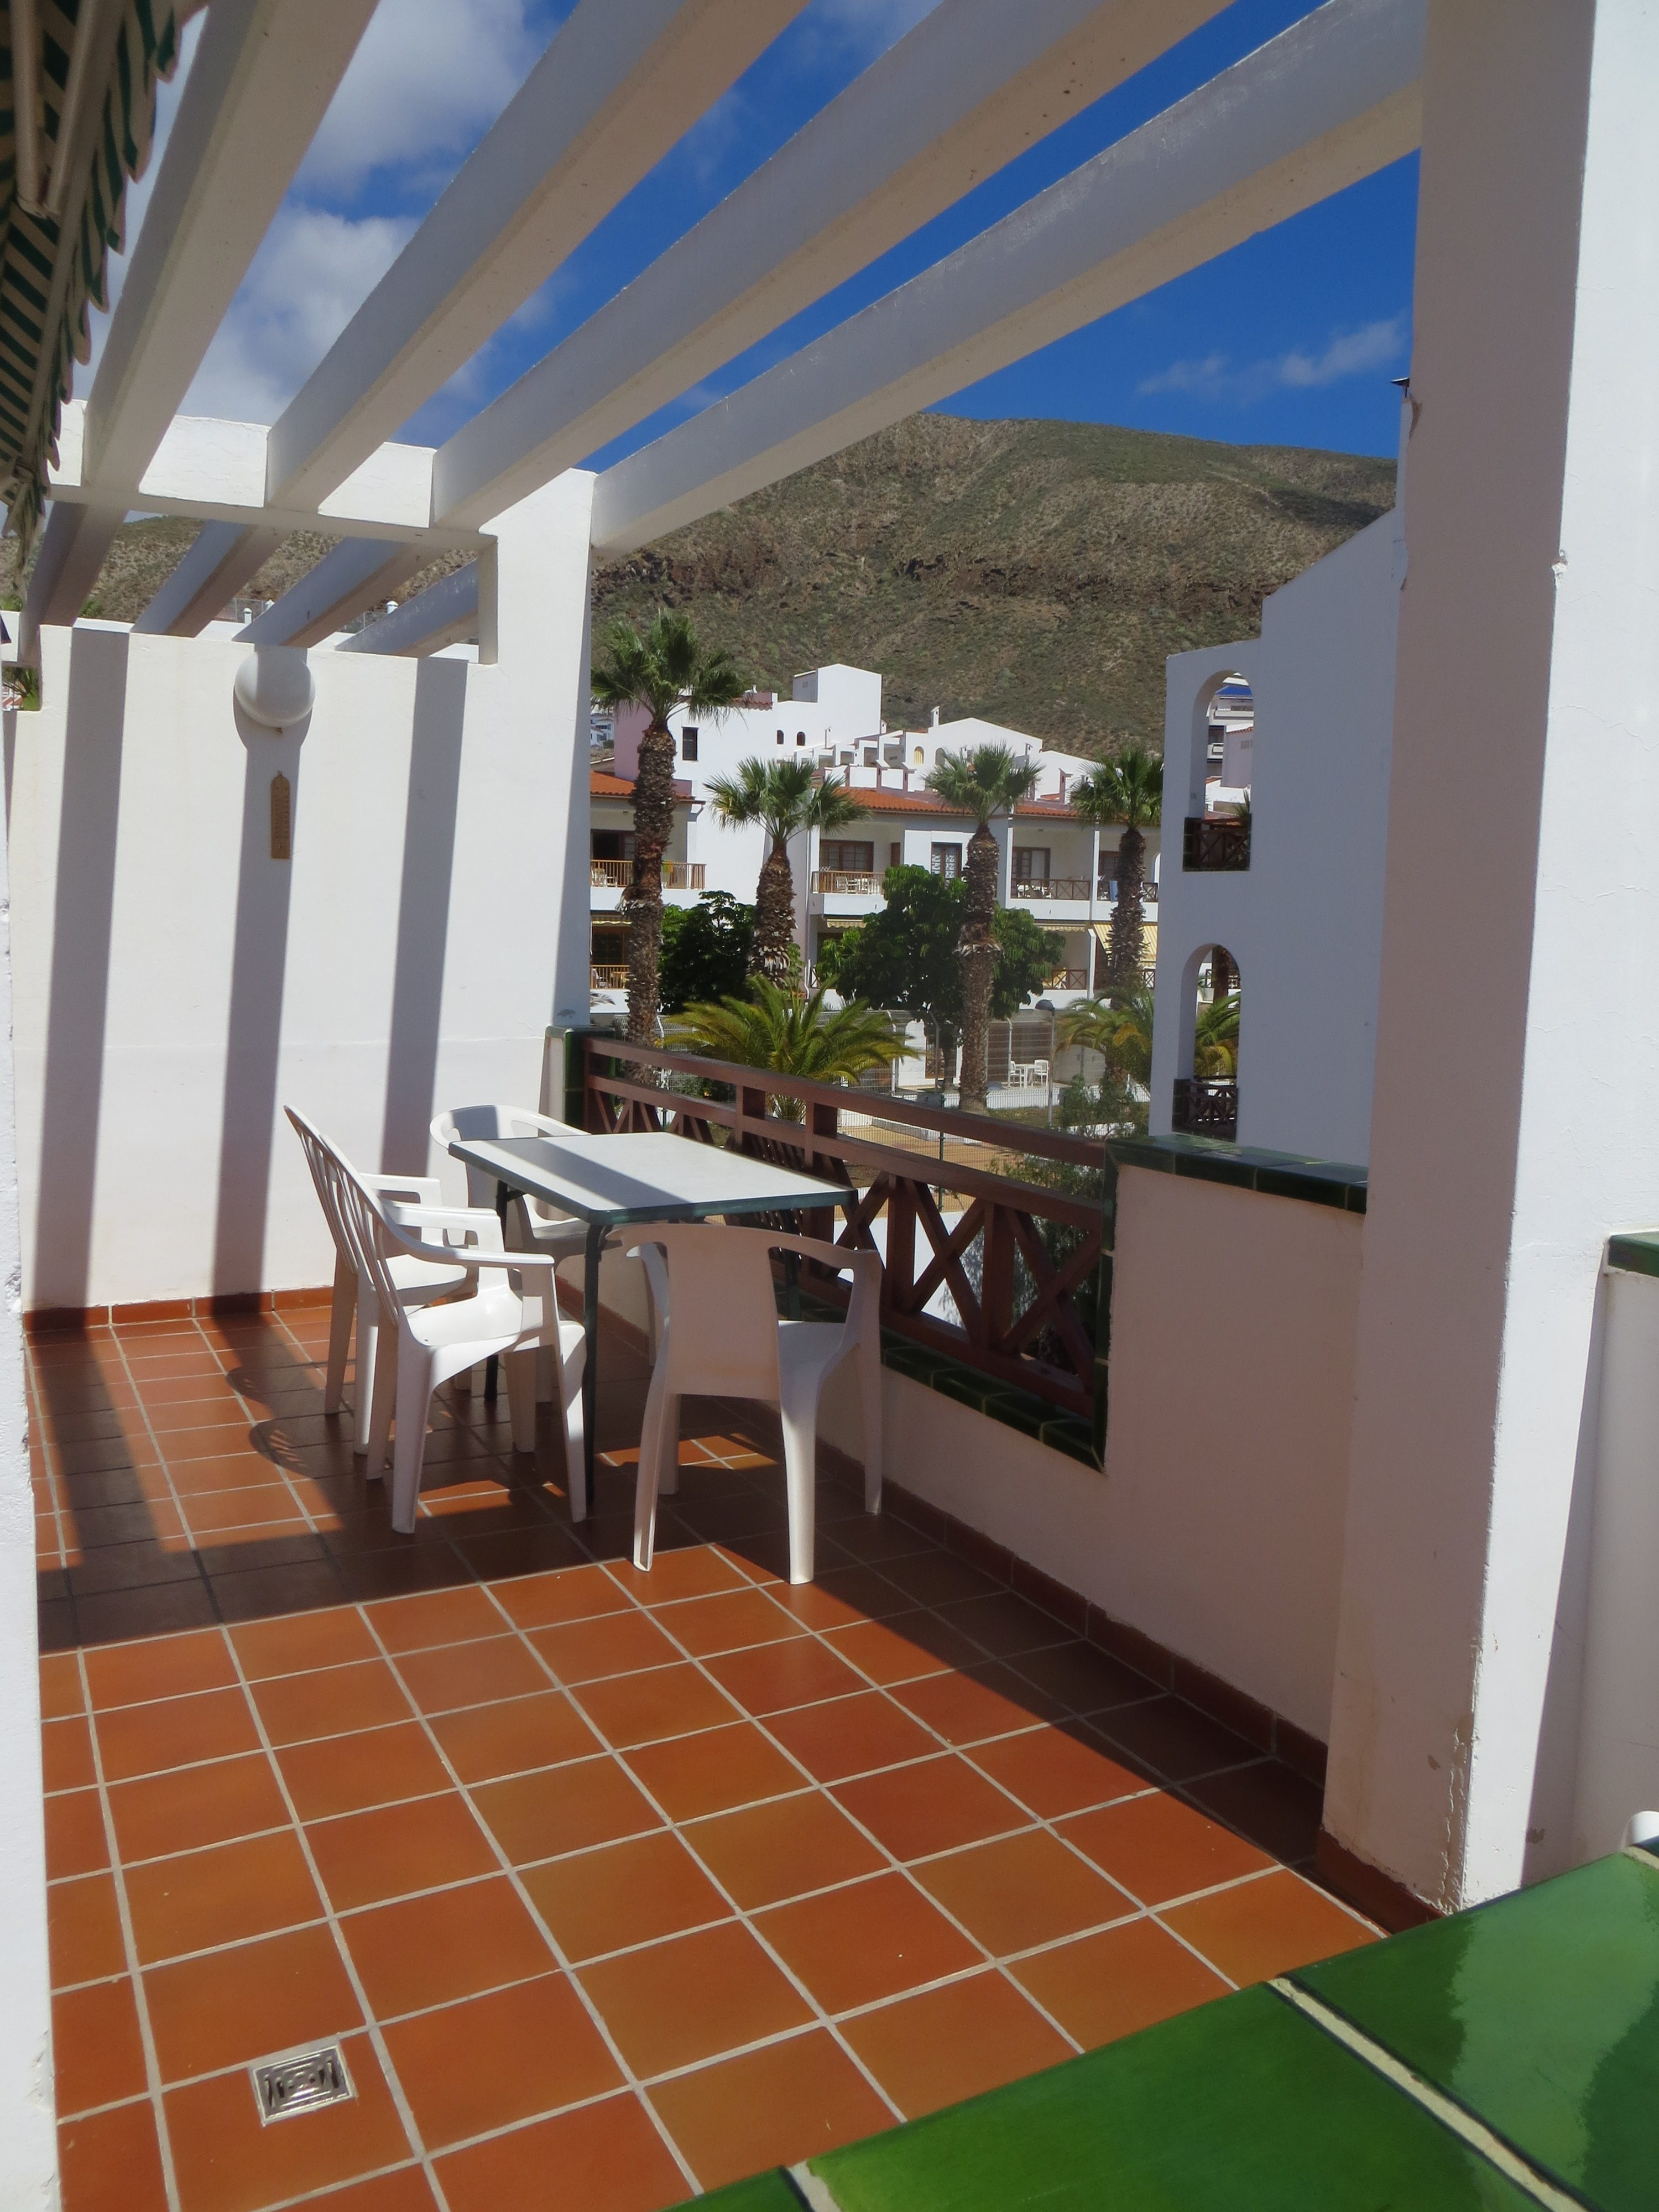 2 Bedroom Holiday Apartment To Rent In Victoria Court 2 Los Cristianos Ref 511 Smarthols Los Cristianos Holiday Apartment Rentals Tenerife